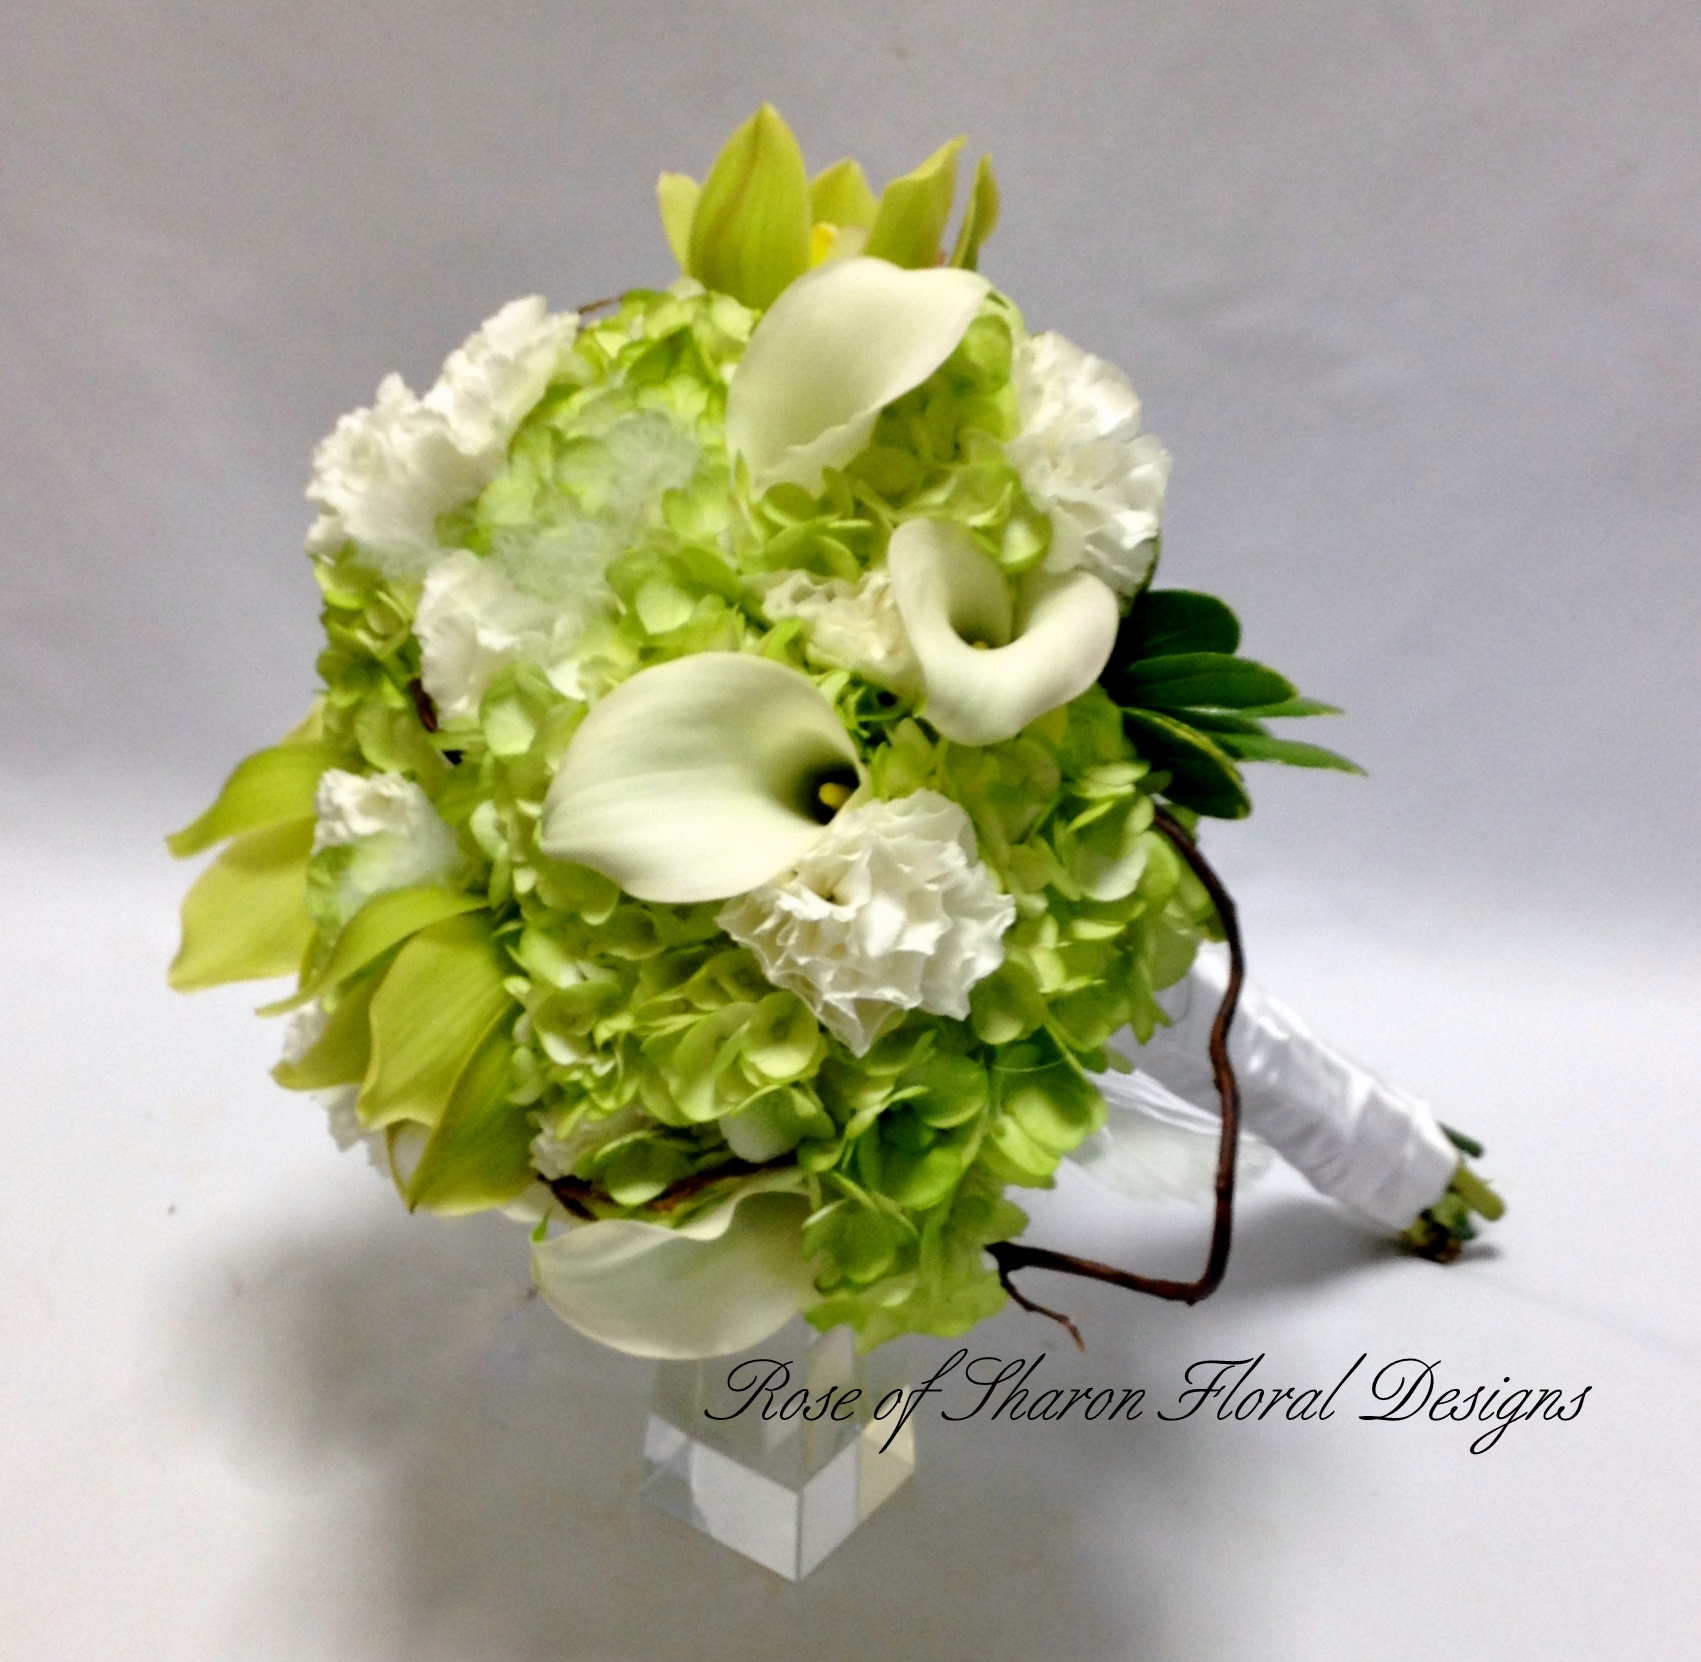 Hand-Tied Hydrangea, Calla Lily, Carnation Bouquet. Rose of Sharon Floral Designs